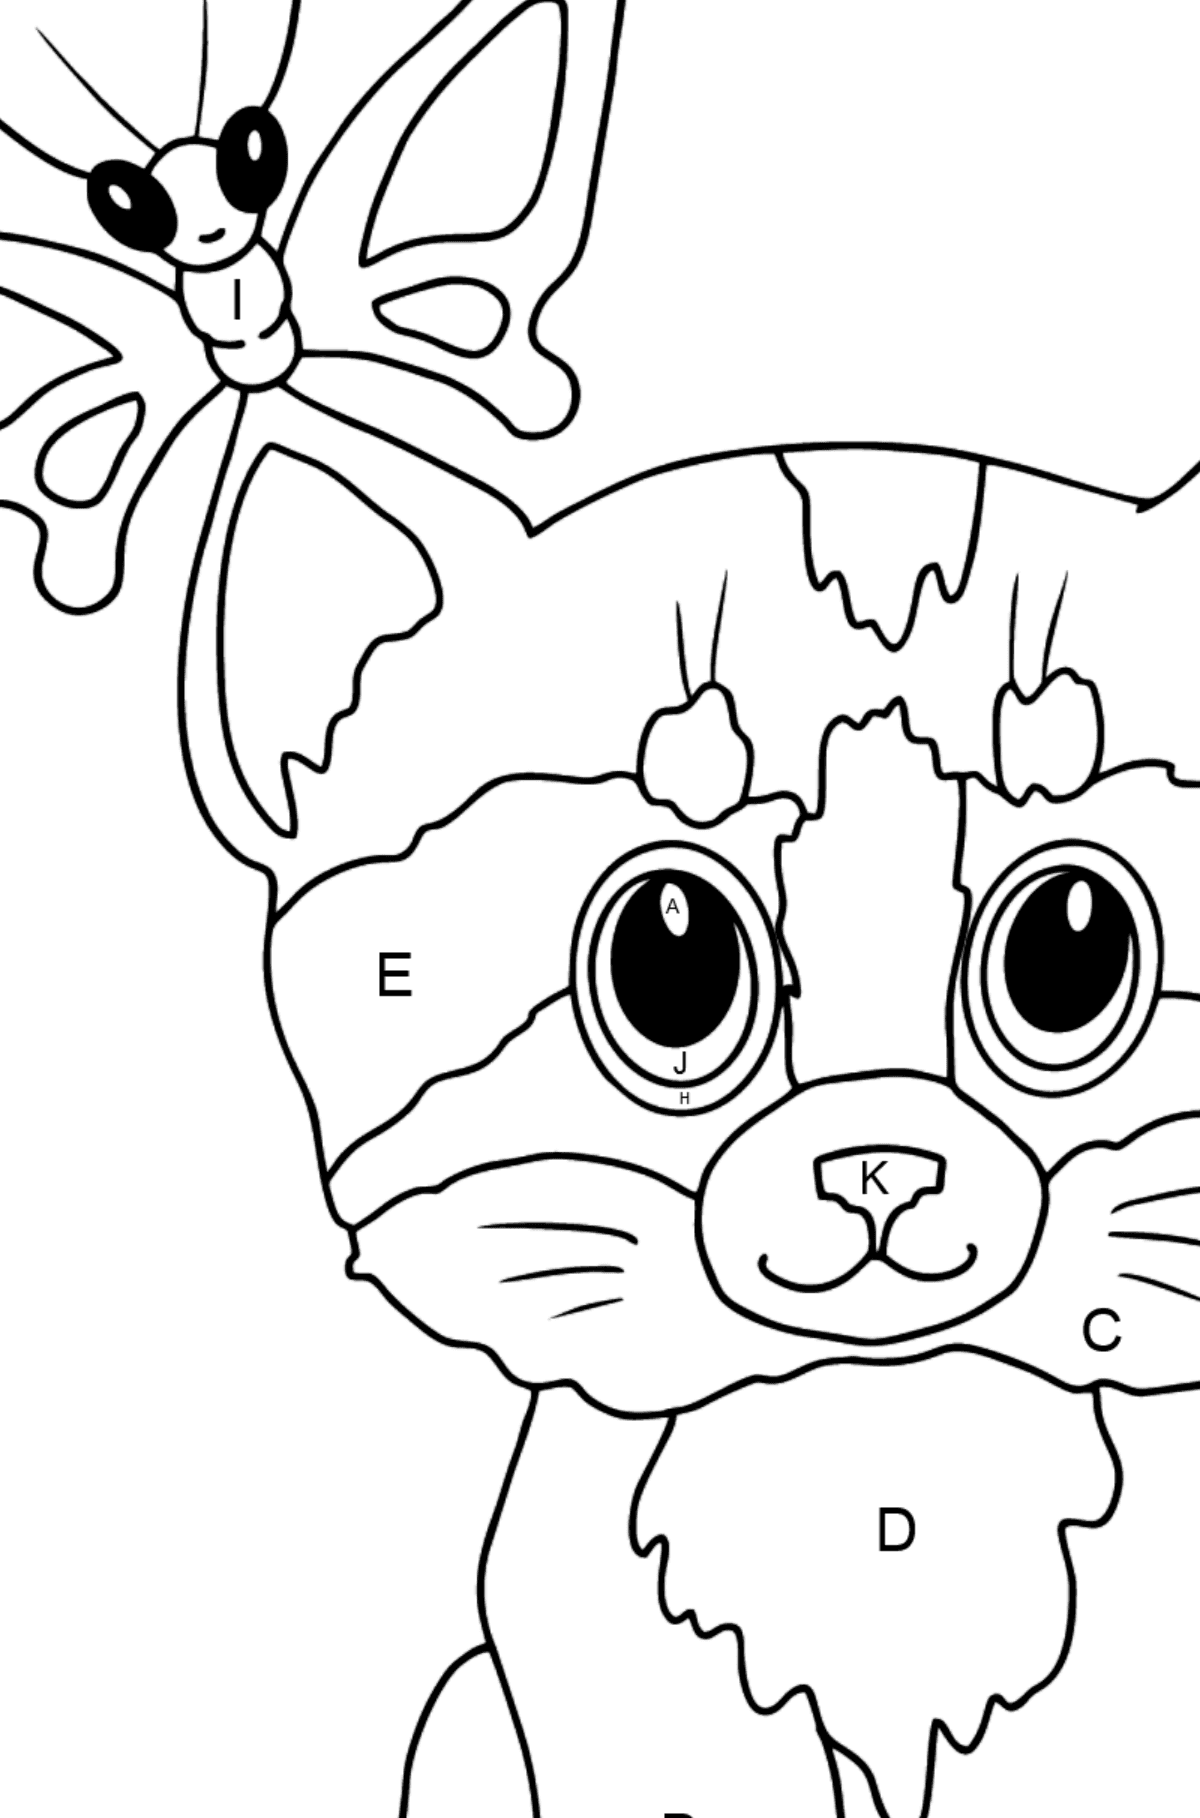 Coloring Page - A Kitten has Caught a Butterfly - Coloring by Letters for Kids